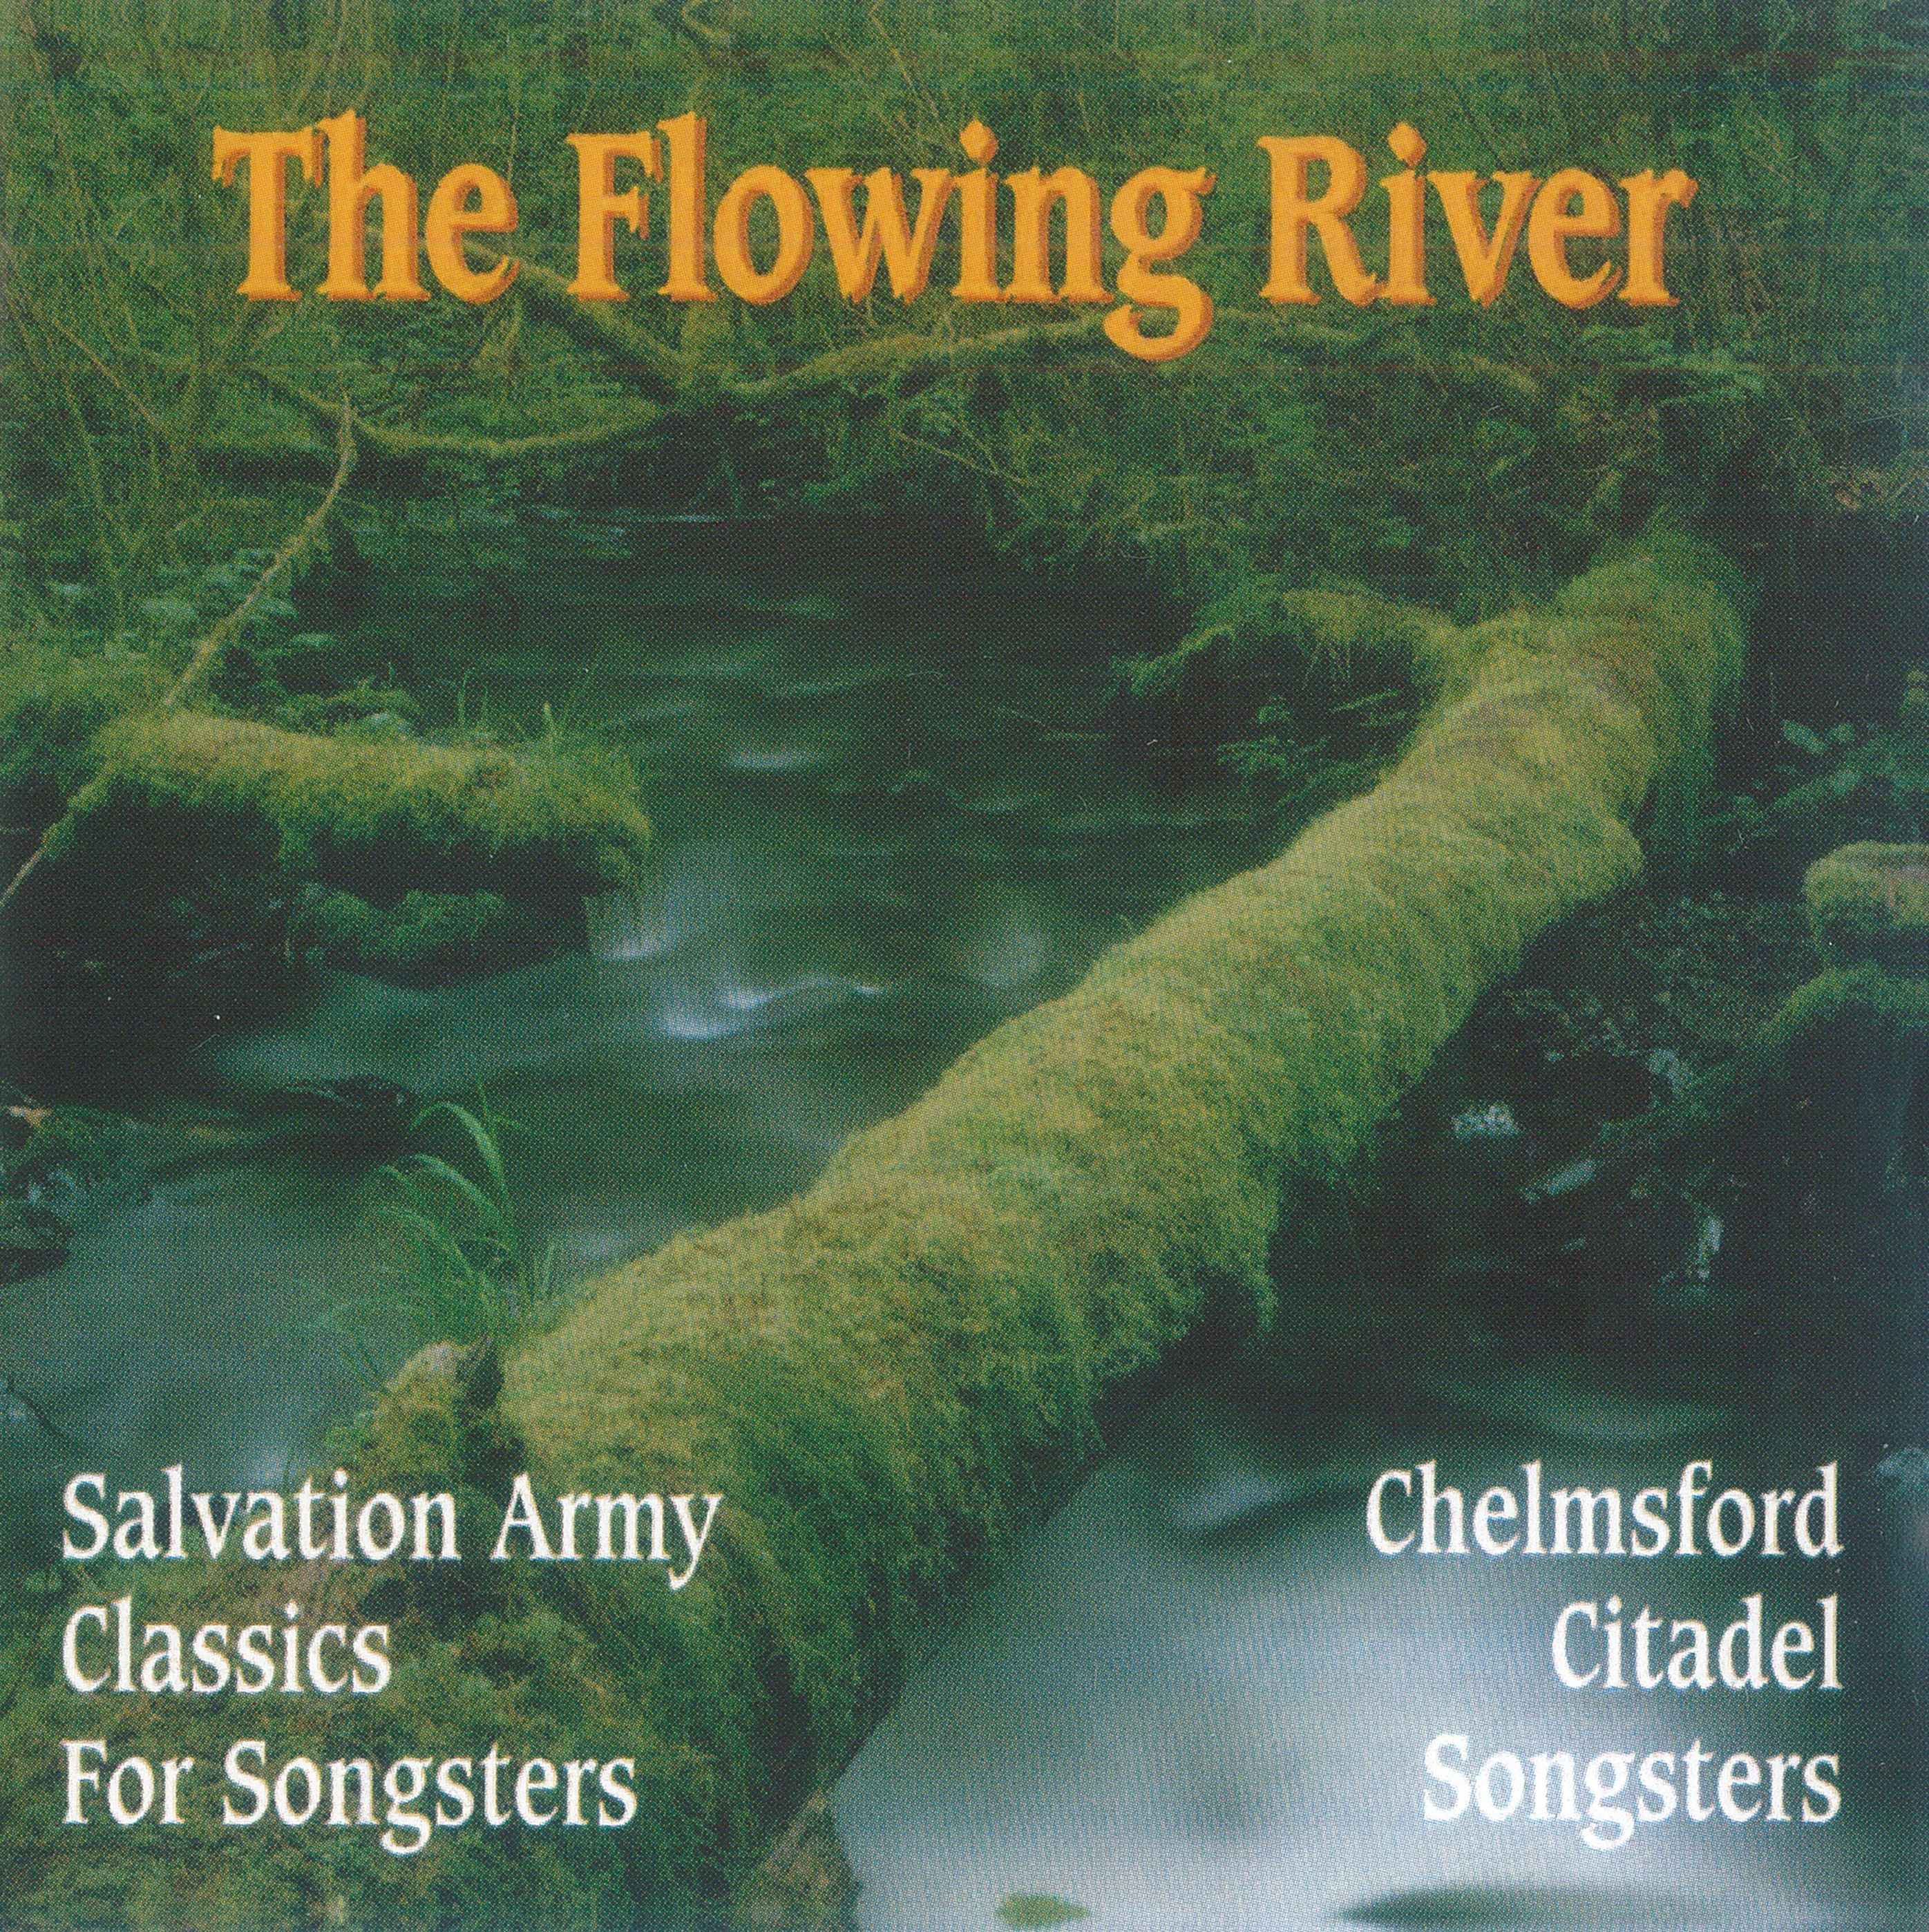 The Flowing River - Download